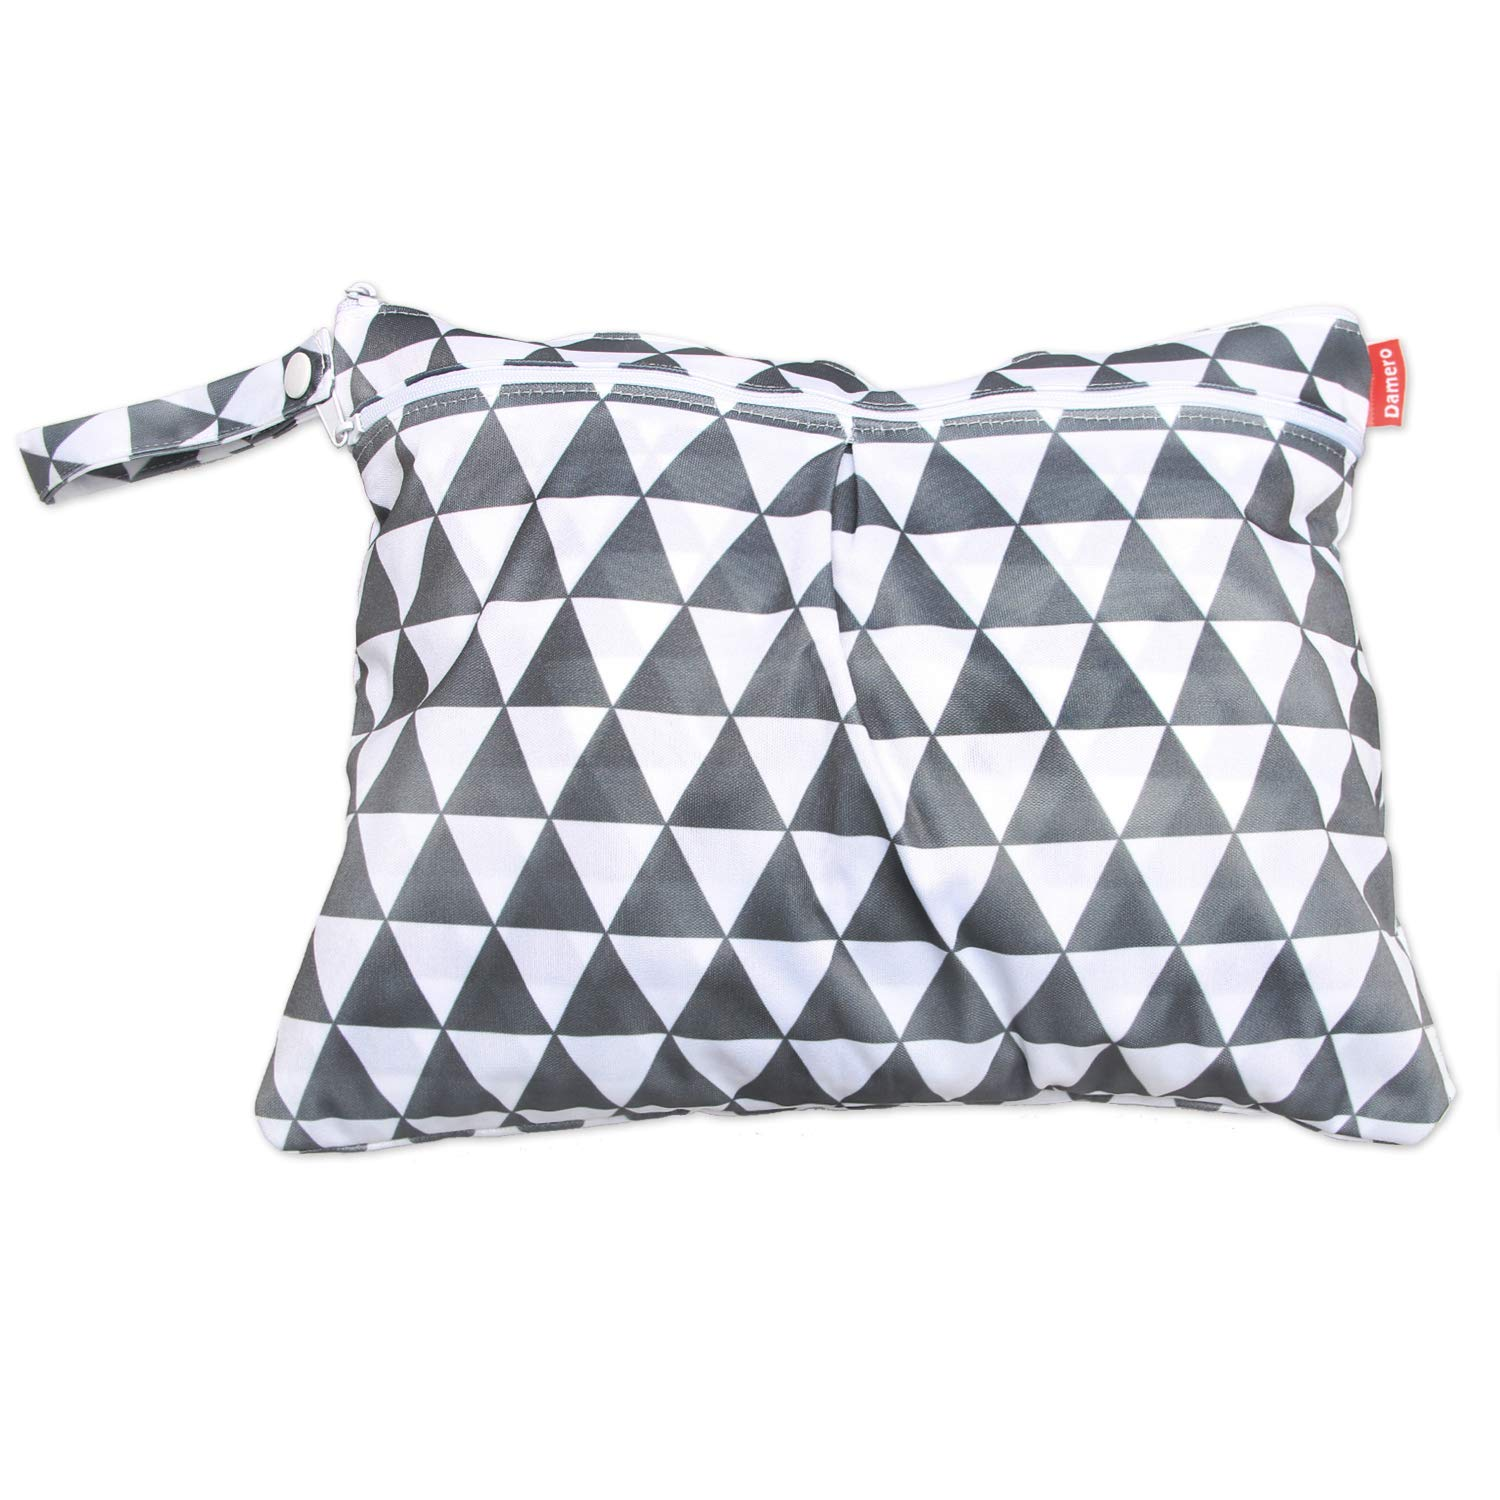 Damero Travel Wet and Dry Bag with Handle for Cloth Diaper, Pumping Parts, Clothes, Swimsuit and More, Easy to Grab and Go (Small, Gray Triangle)